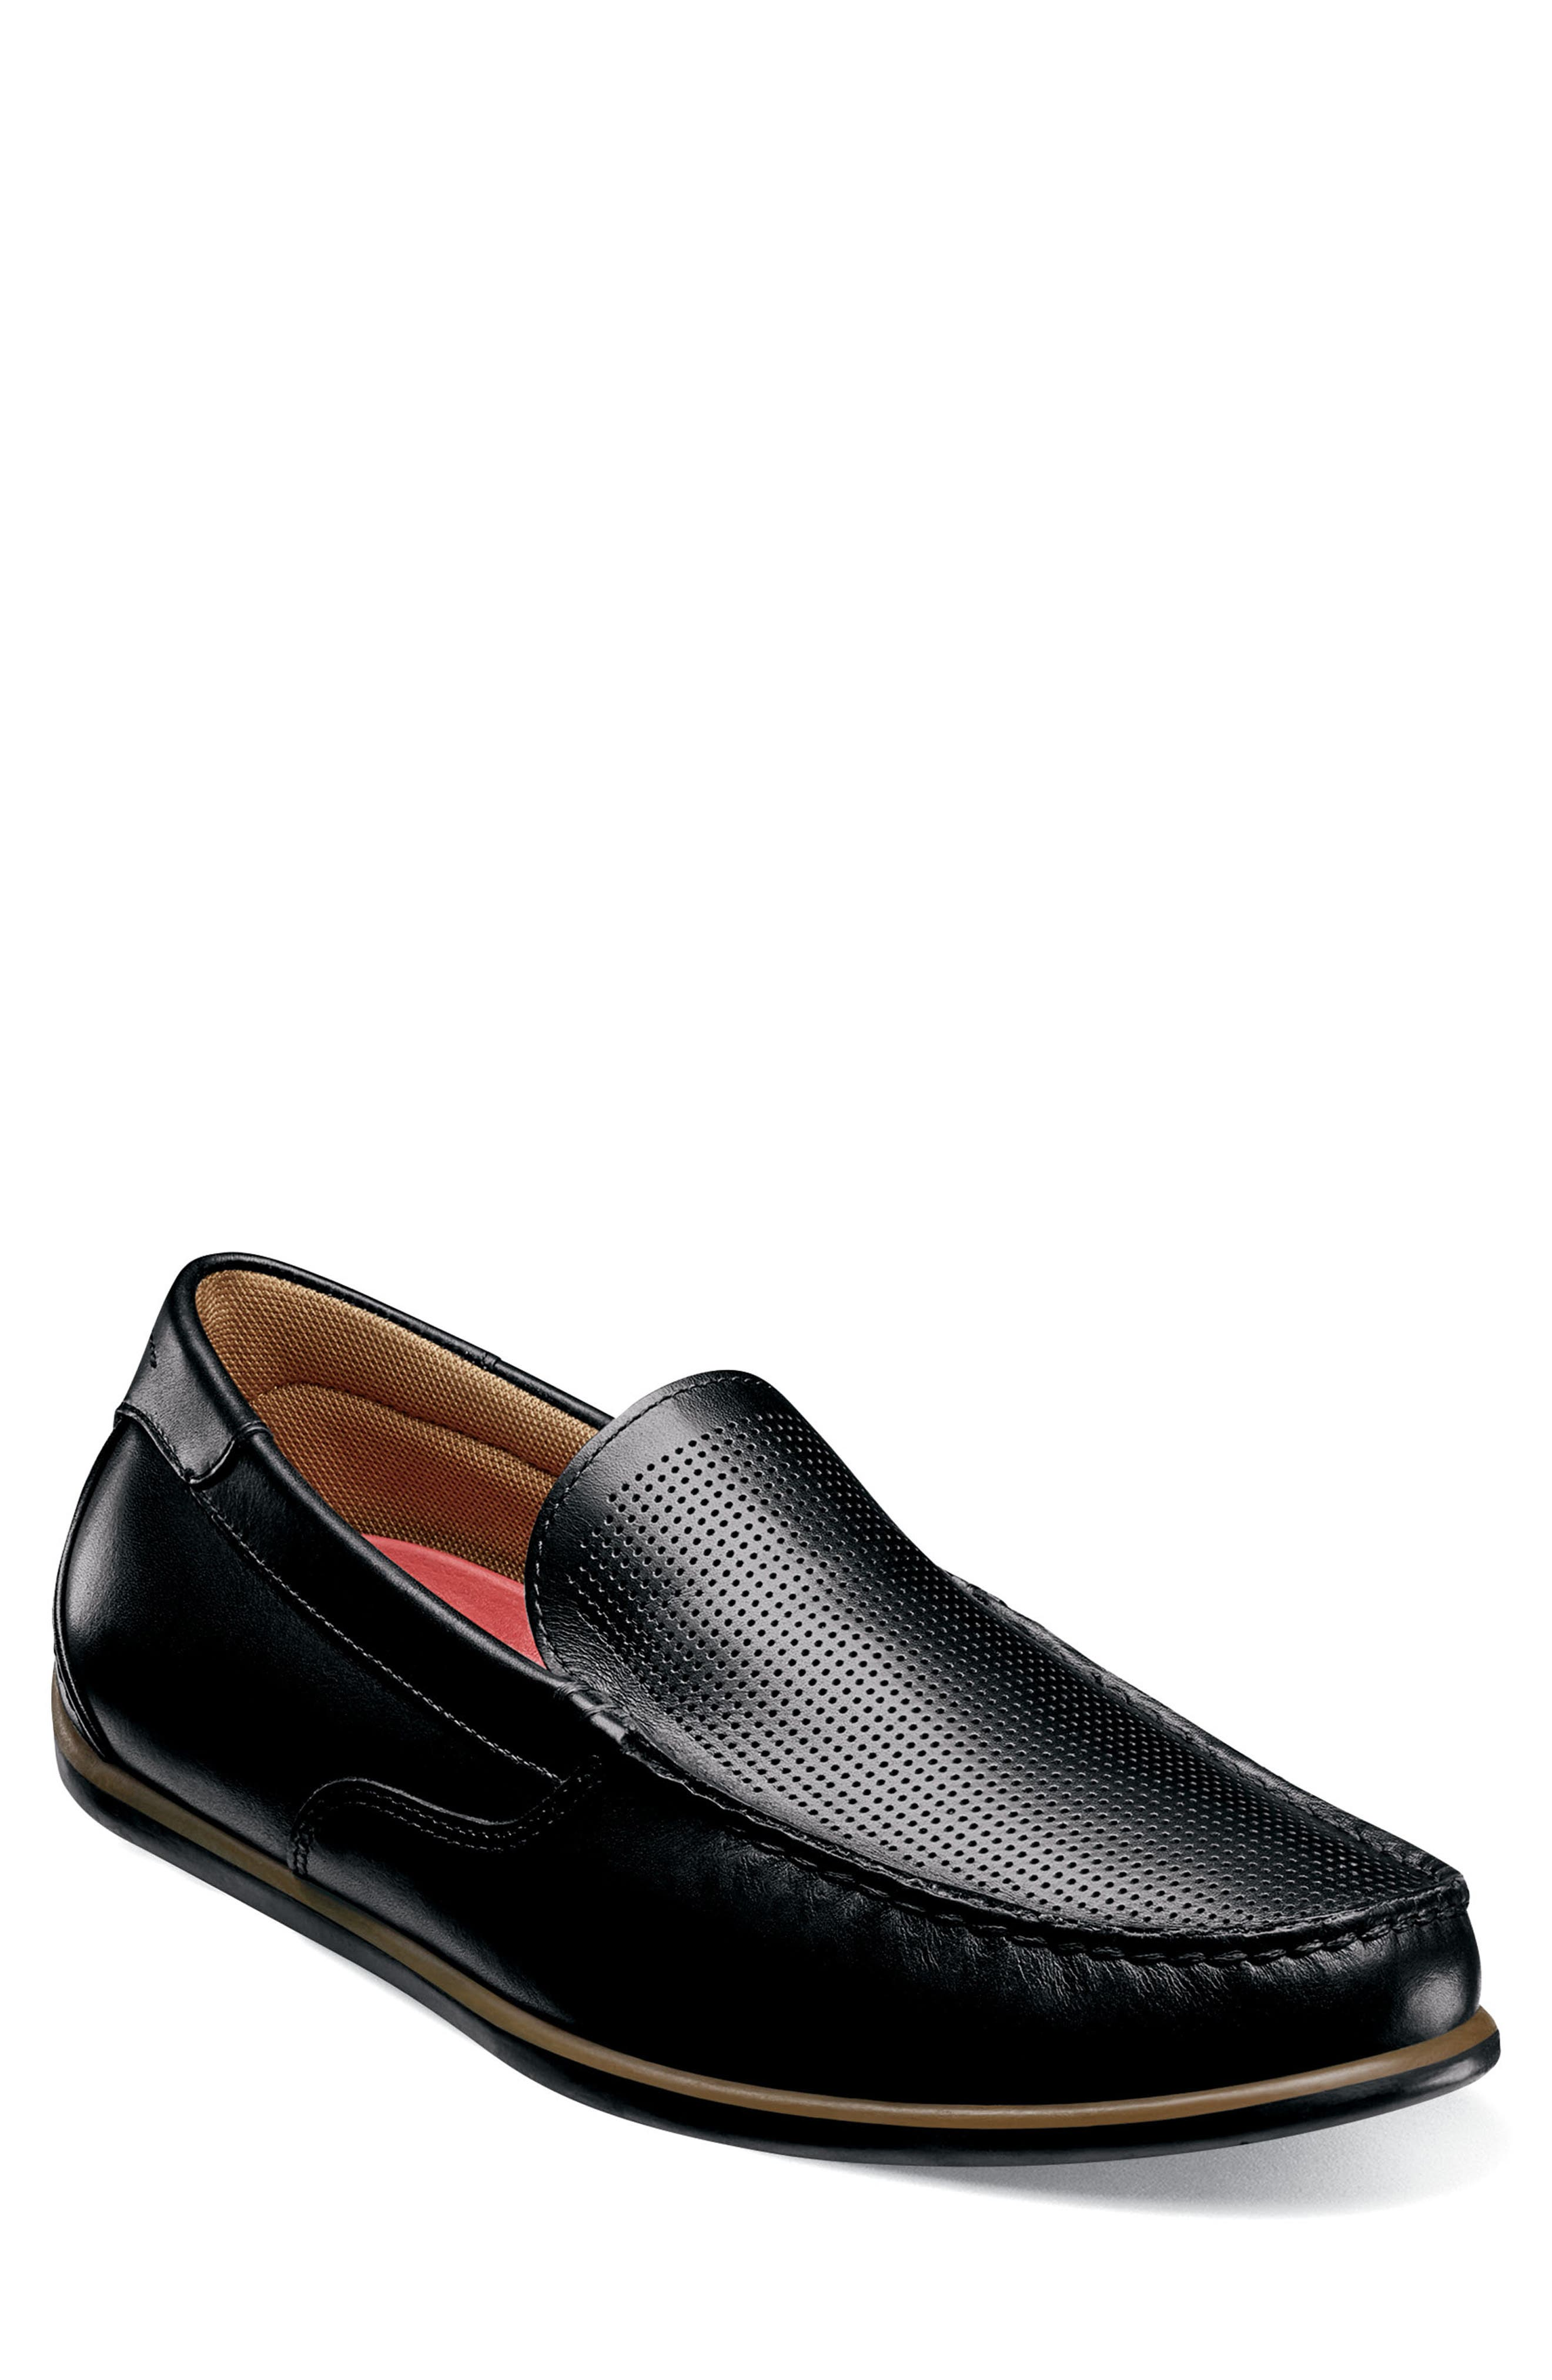 Image of Florsheim Sportster Leather Venetian Driving Loafer